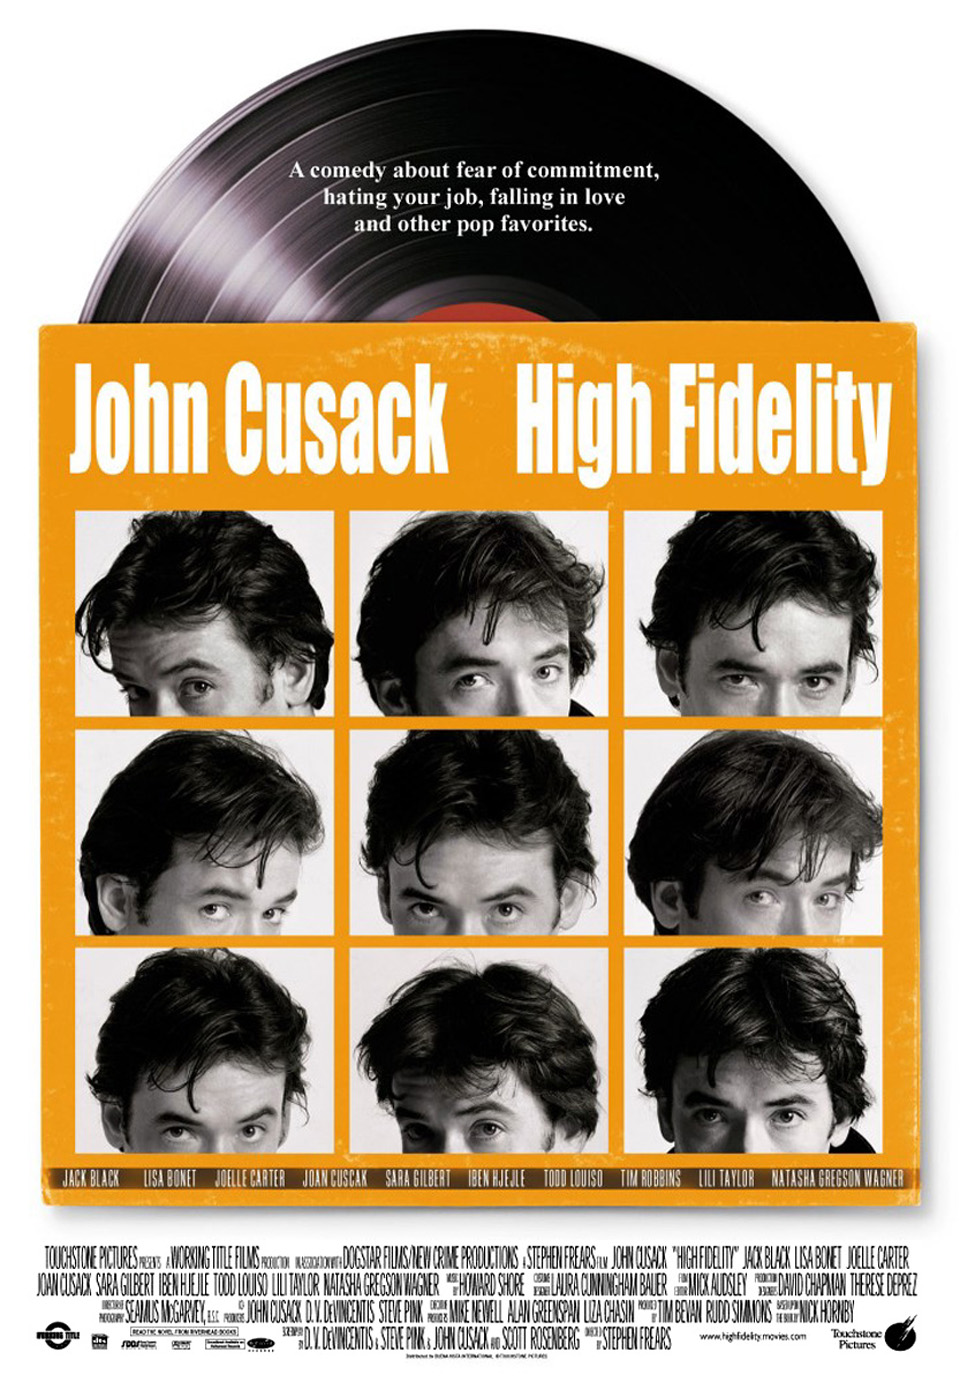 High Fidelity (2000)